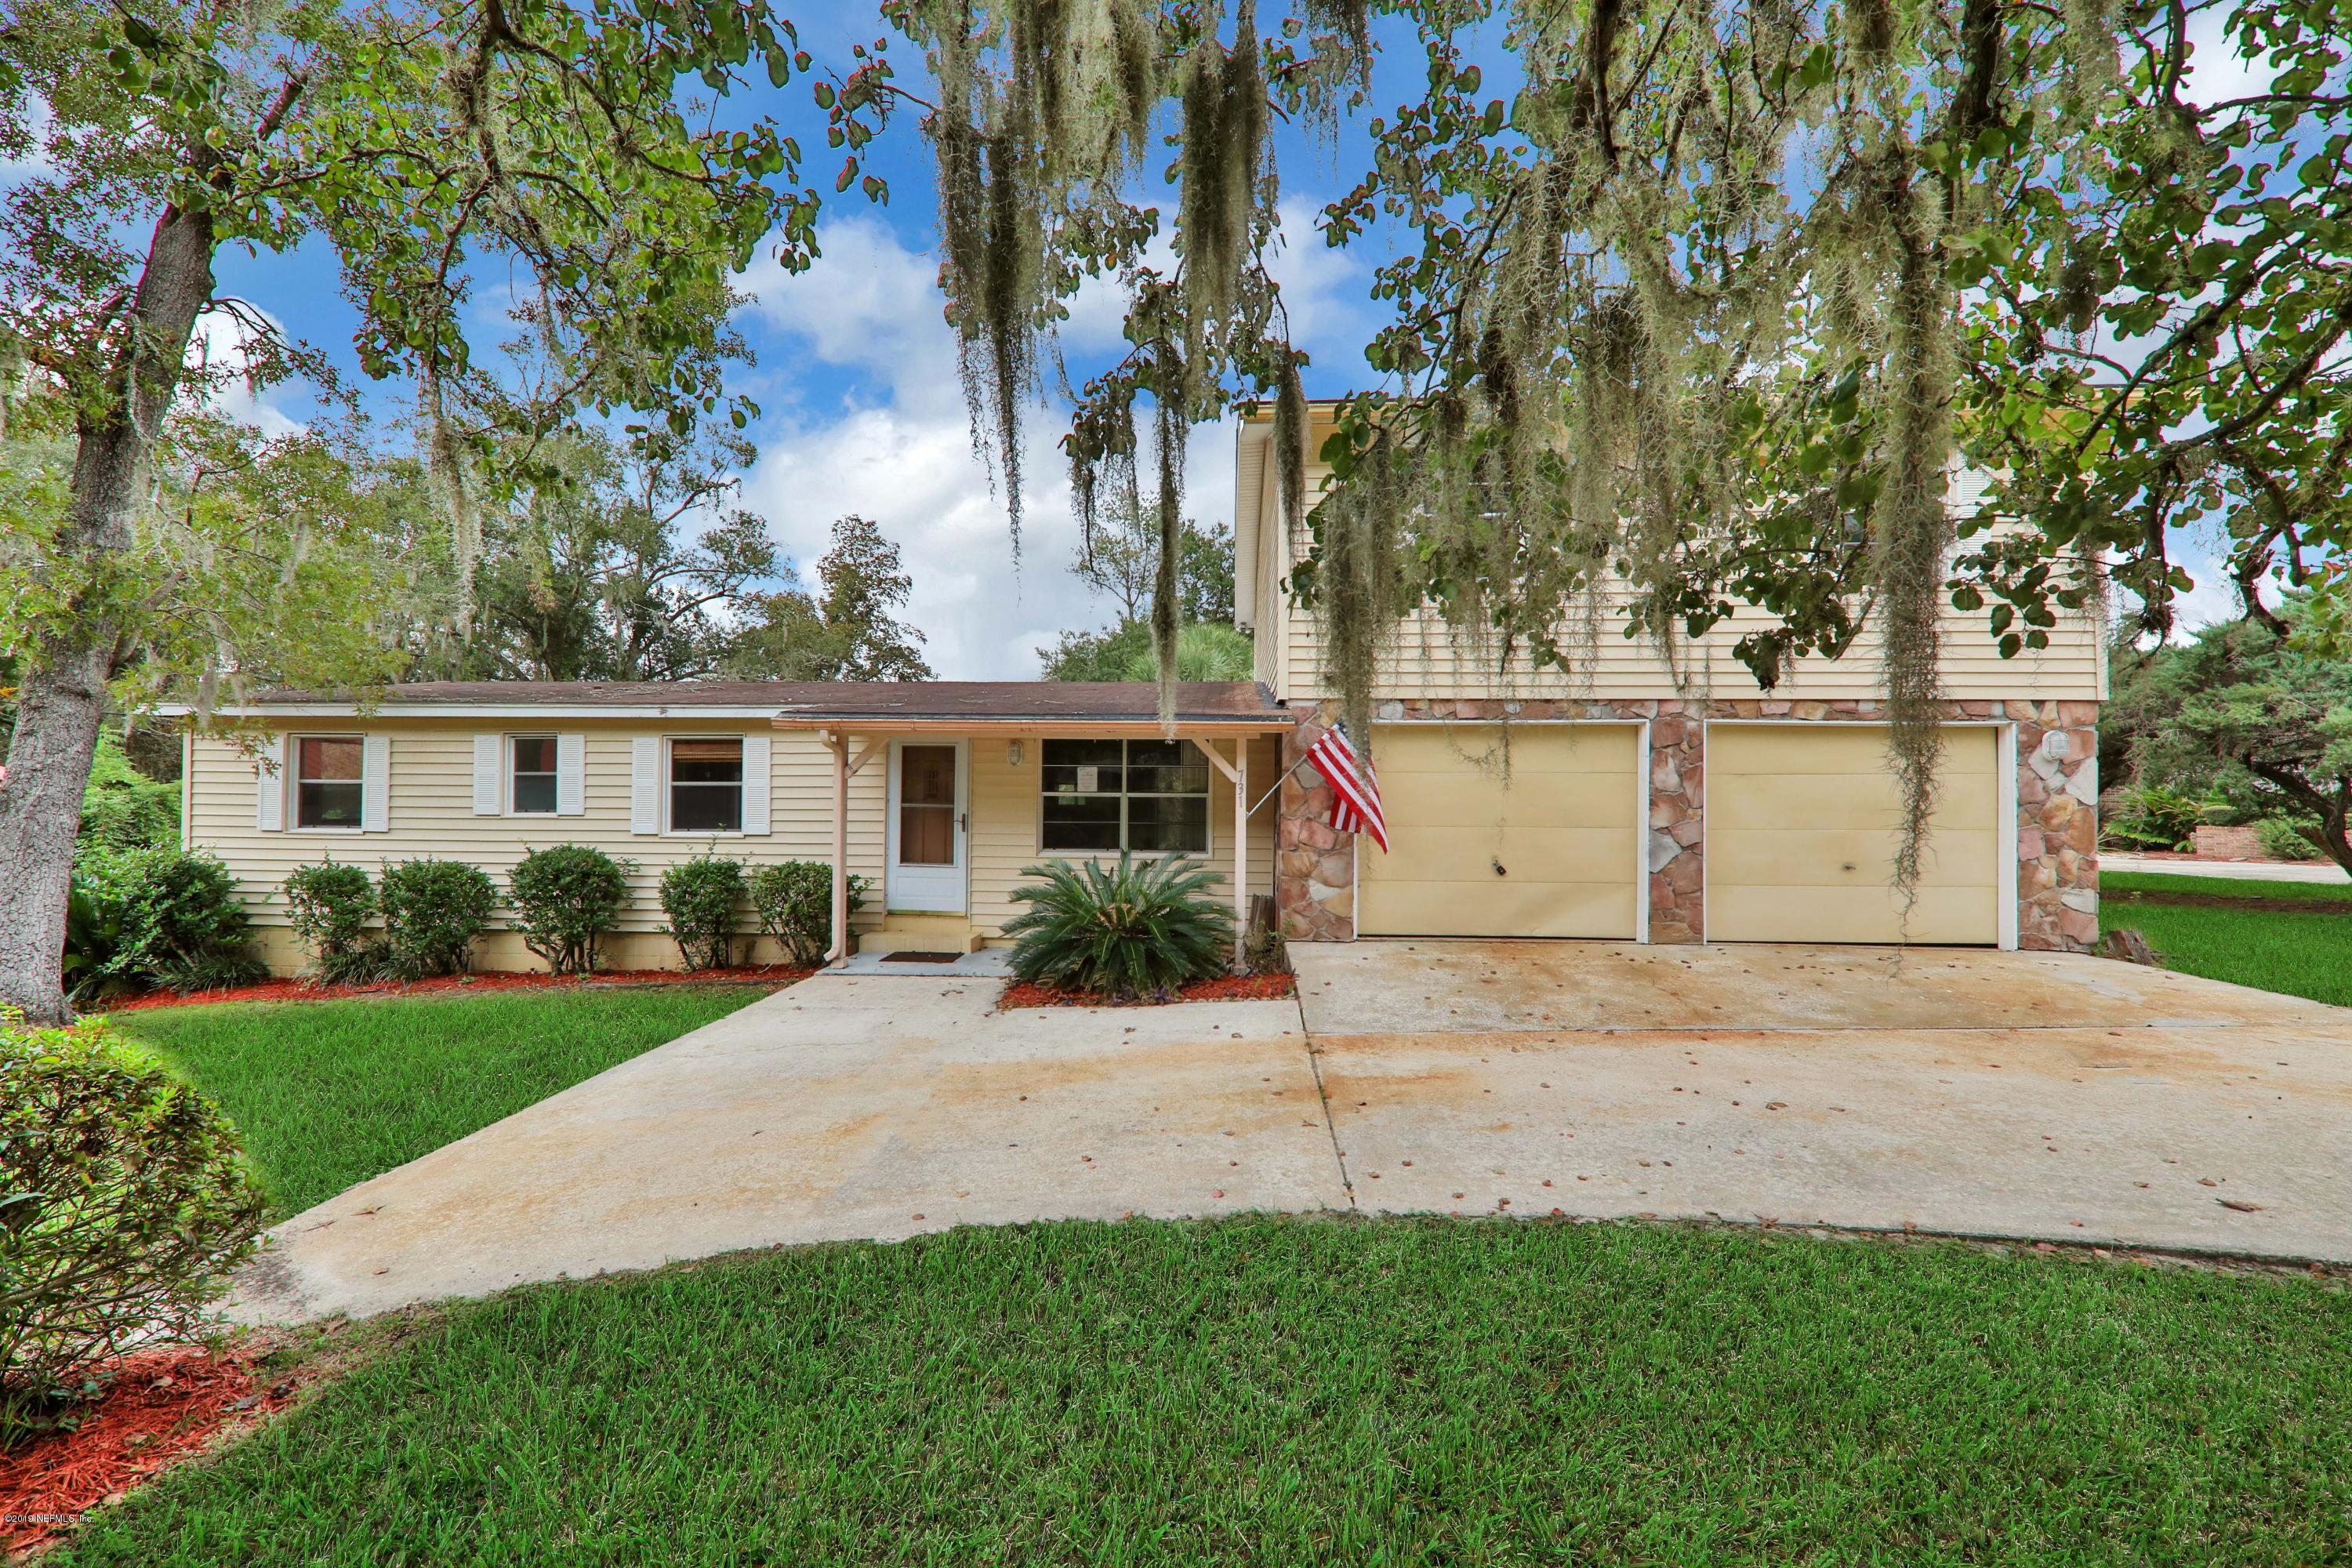 731 ARTHUR MOORE, GREEN COVE SPRINGS, FLORIDA 32043, 3 Bedrooms Bedrooms, ,1 BathroomBathrooms,Residential - single family,For sale,ARTHUR MOORE,1022168